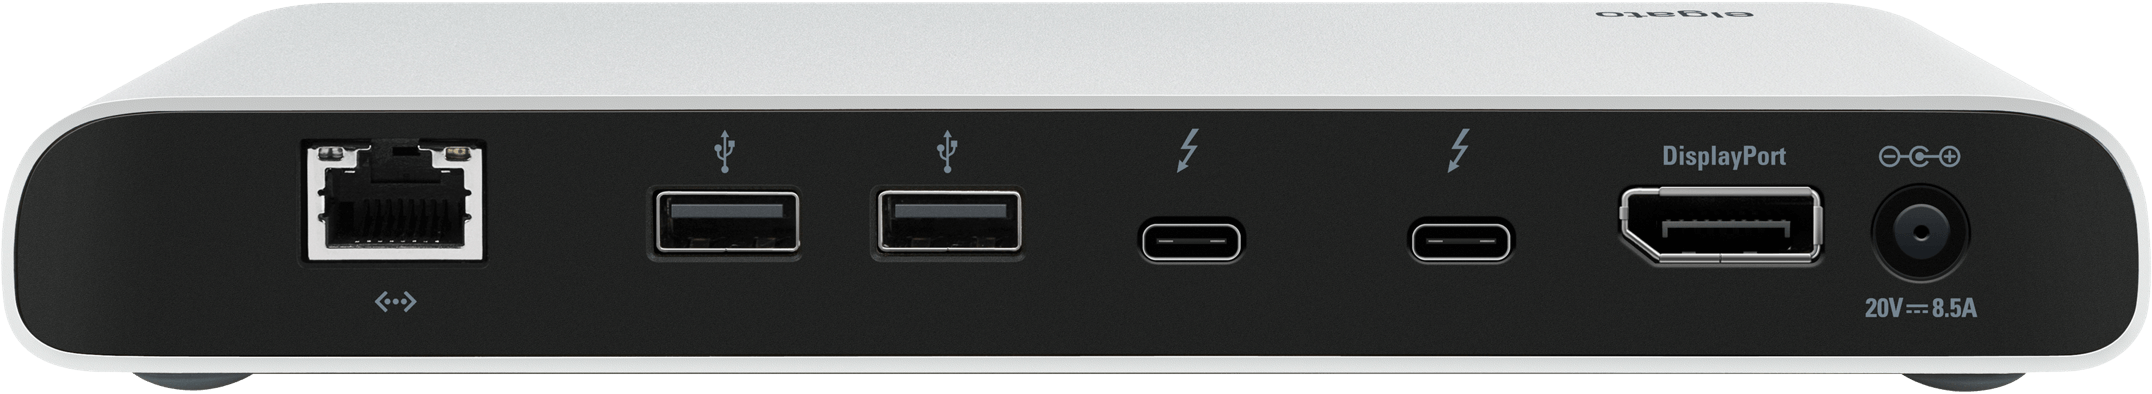 Thunderbolt 3 Dock Usb To Lan Wiring Diagram Audio Out In 30 Gigabit Ethernet